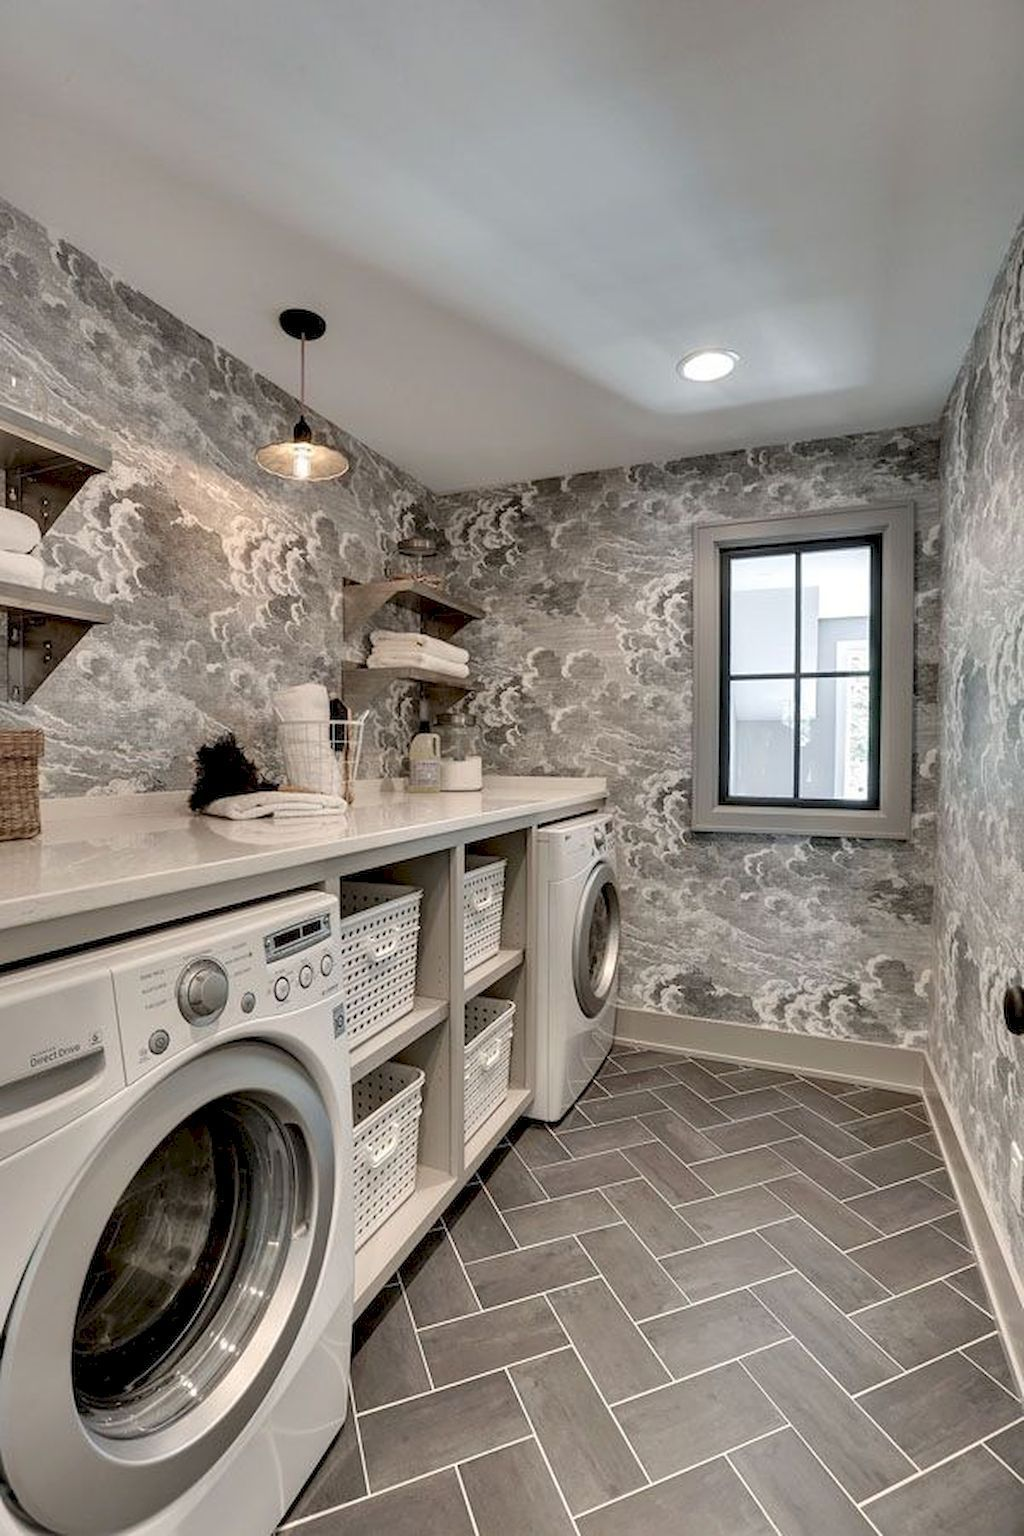 Best 70 Laundry Room Decor Remodel Ideas To Inspire Youhttps